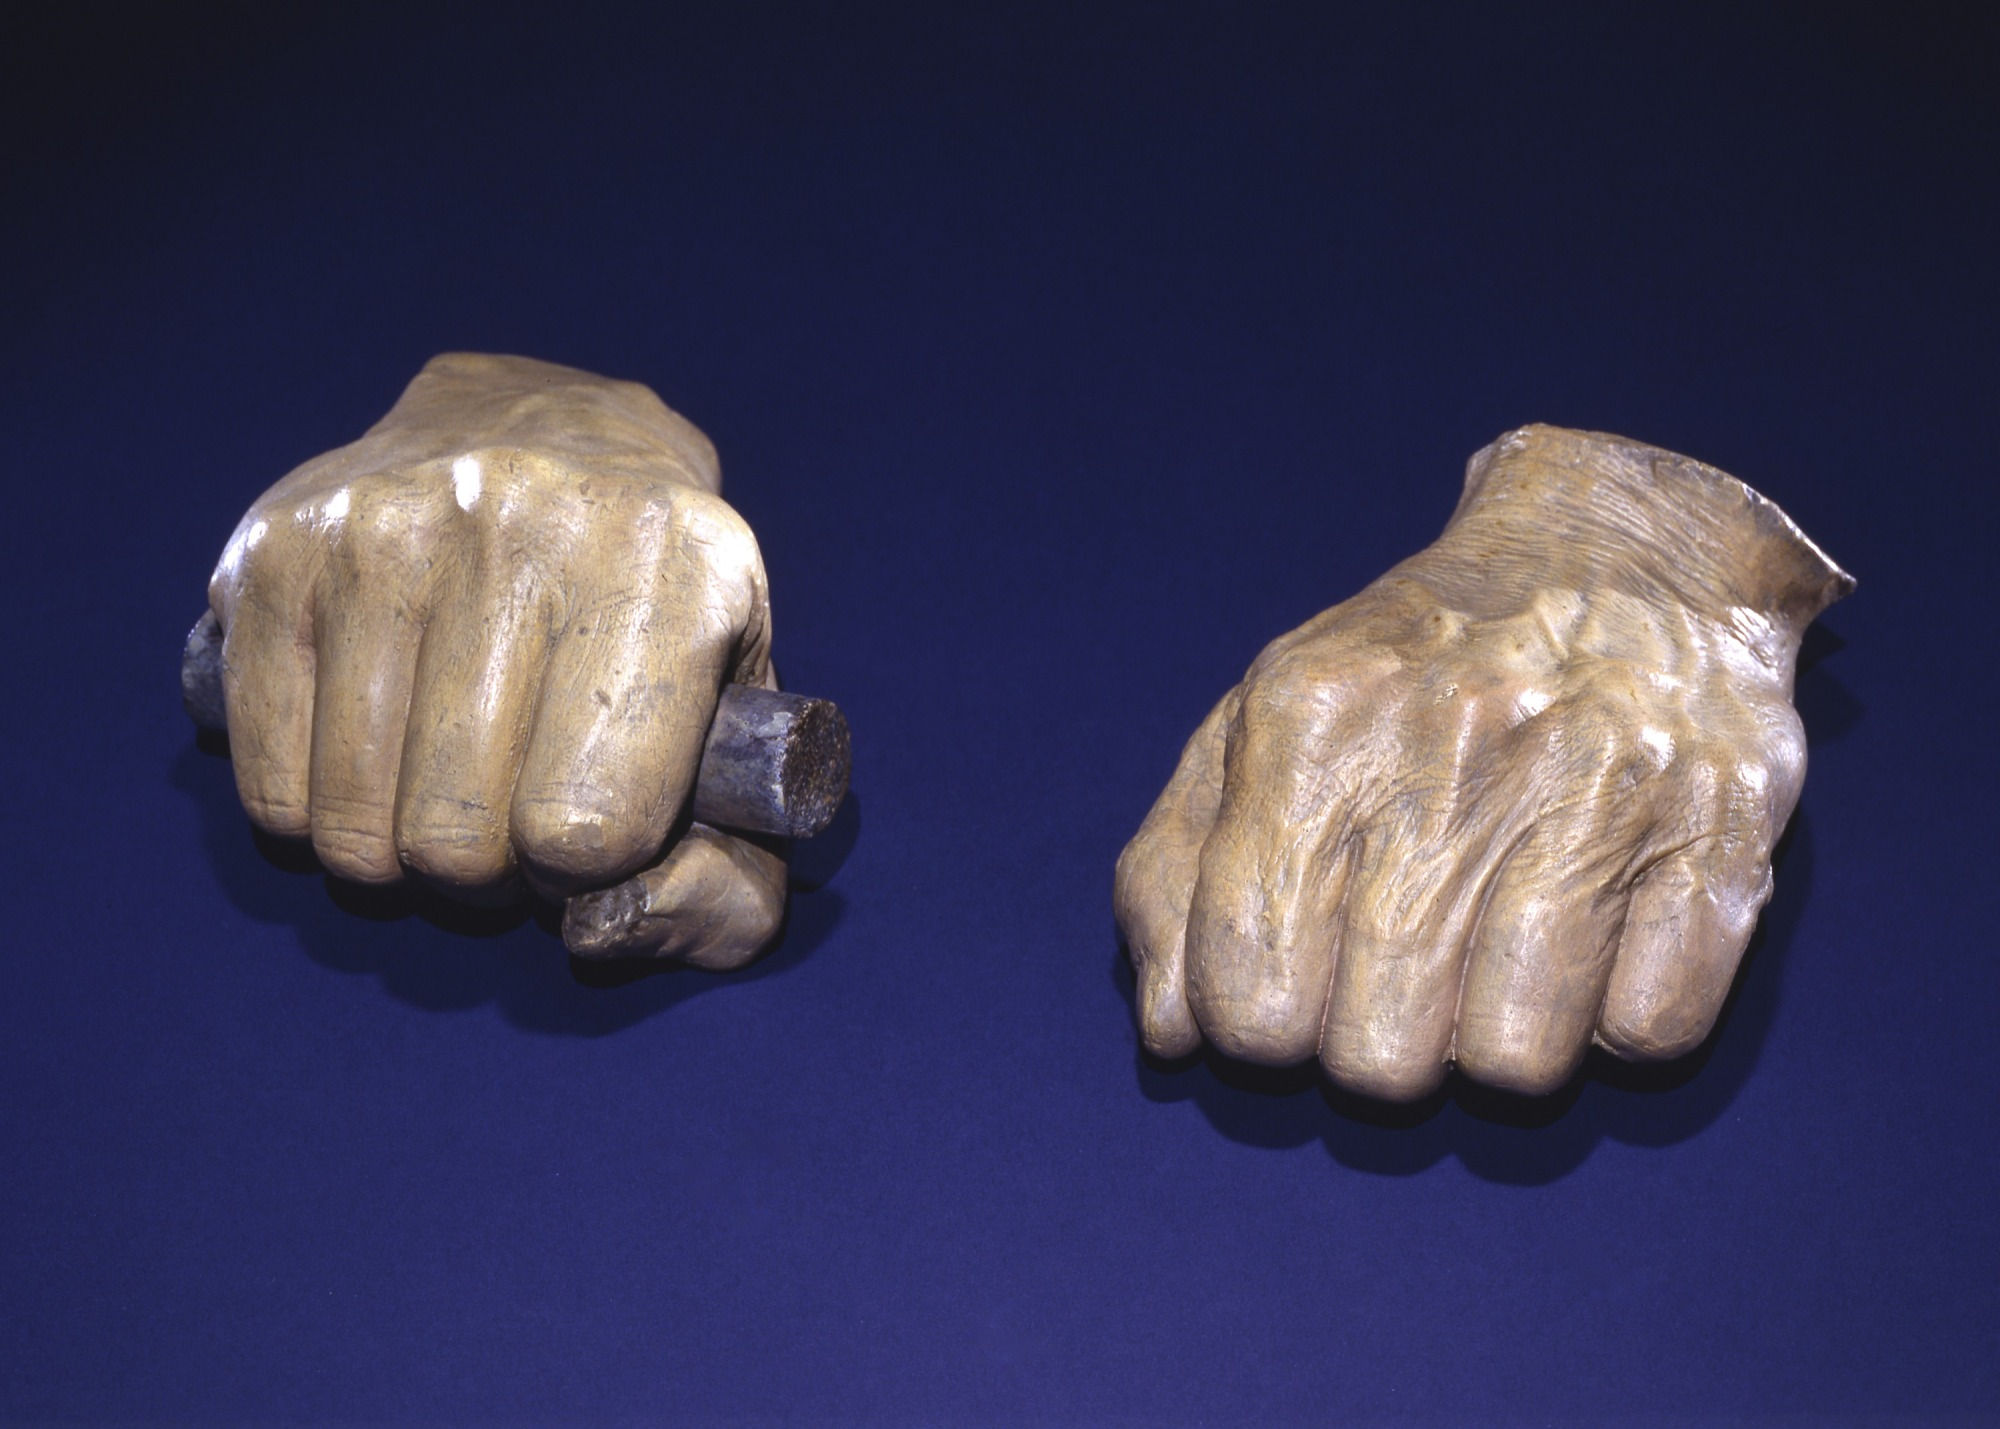 Casts of Abraham Lincoln's Face and Hands | National Museum